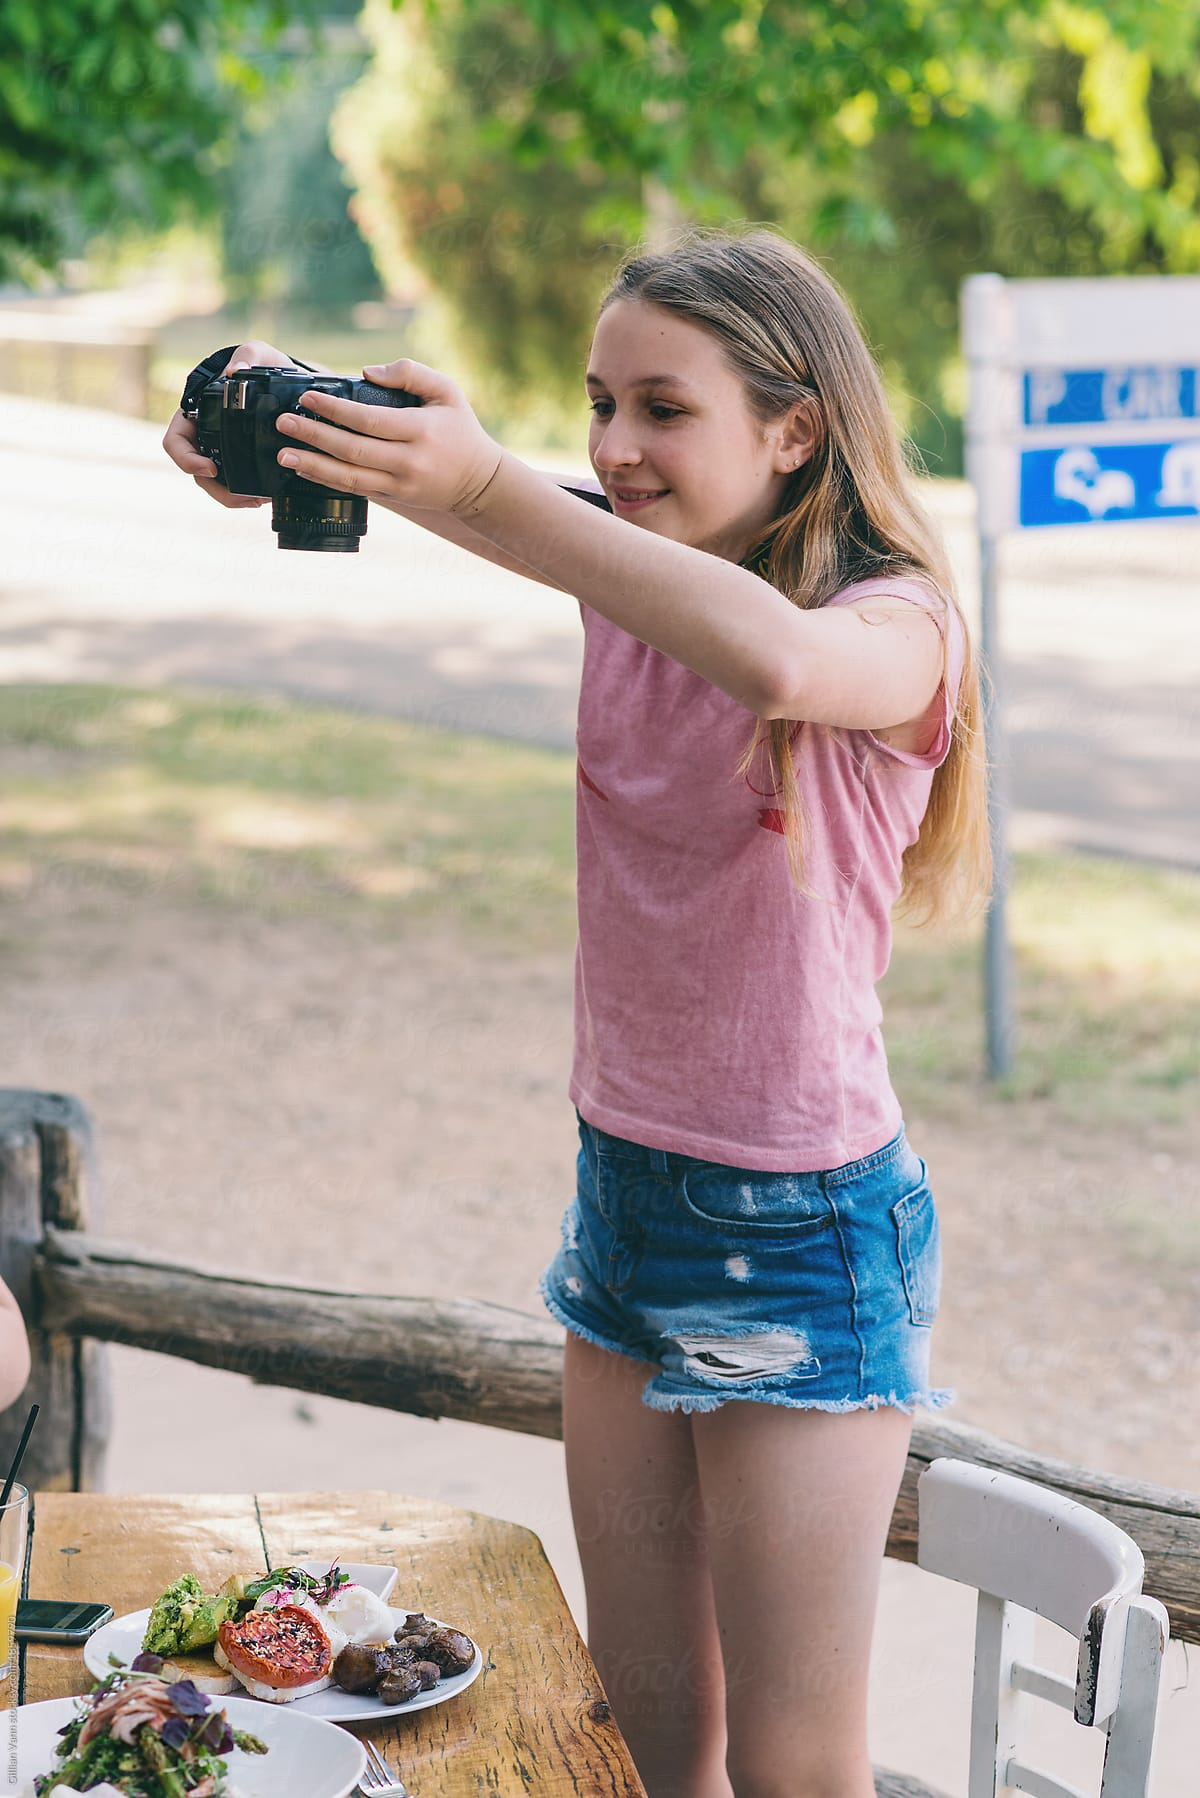 c2025d260e75 Teen Taking Photos Of Her Food With DSLR